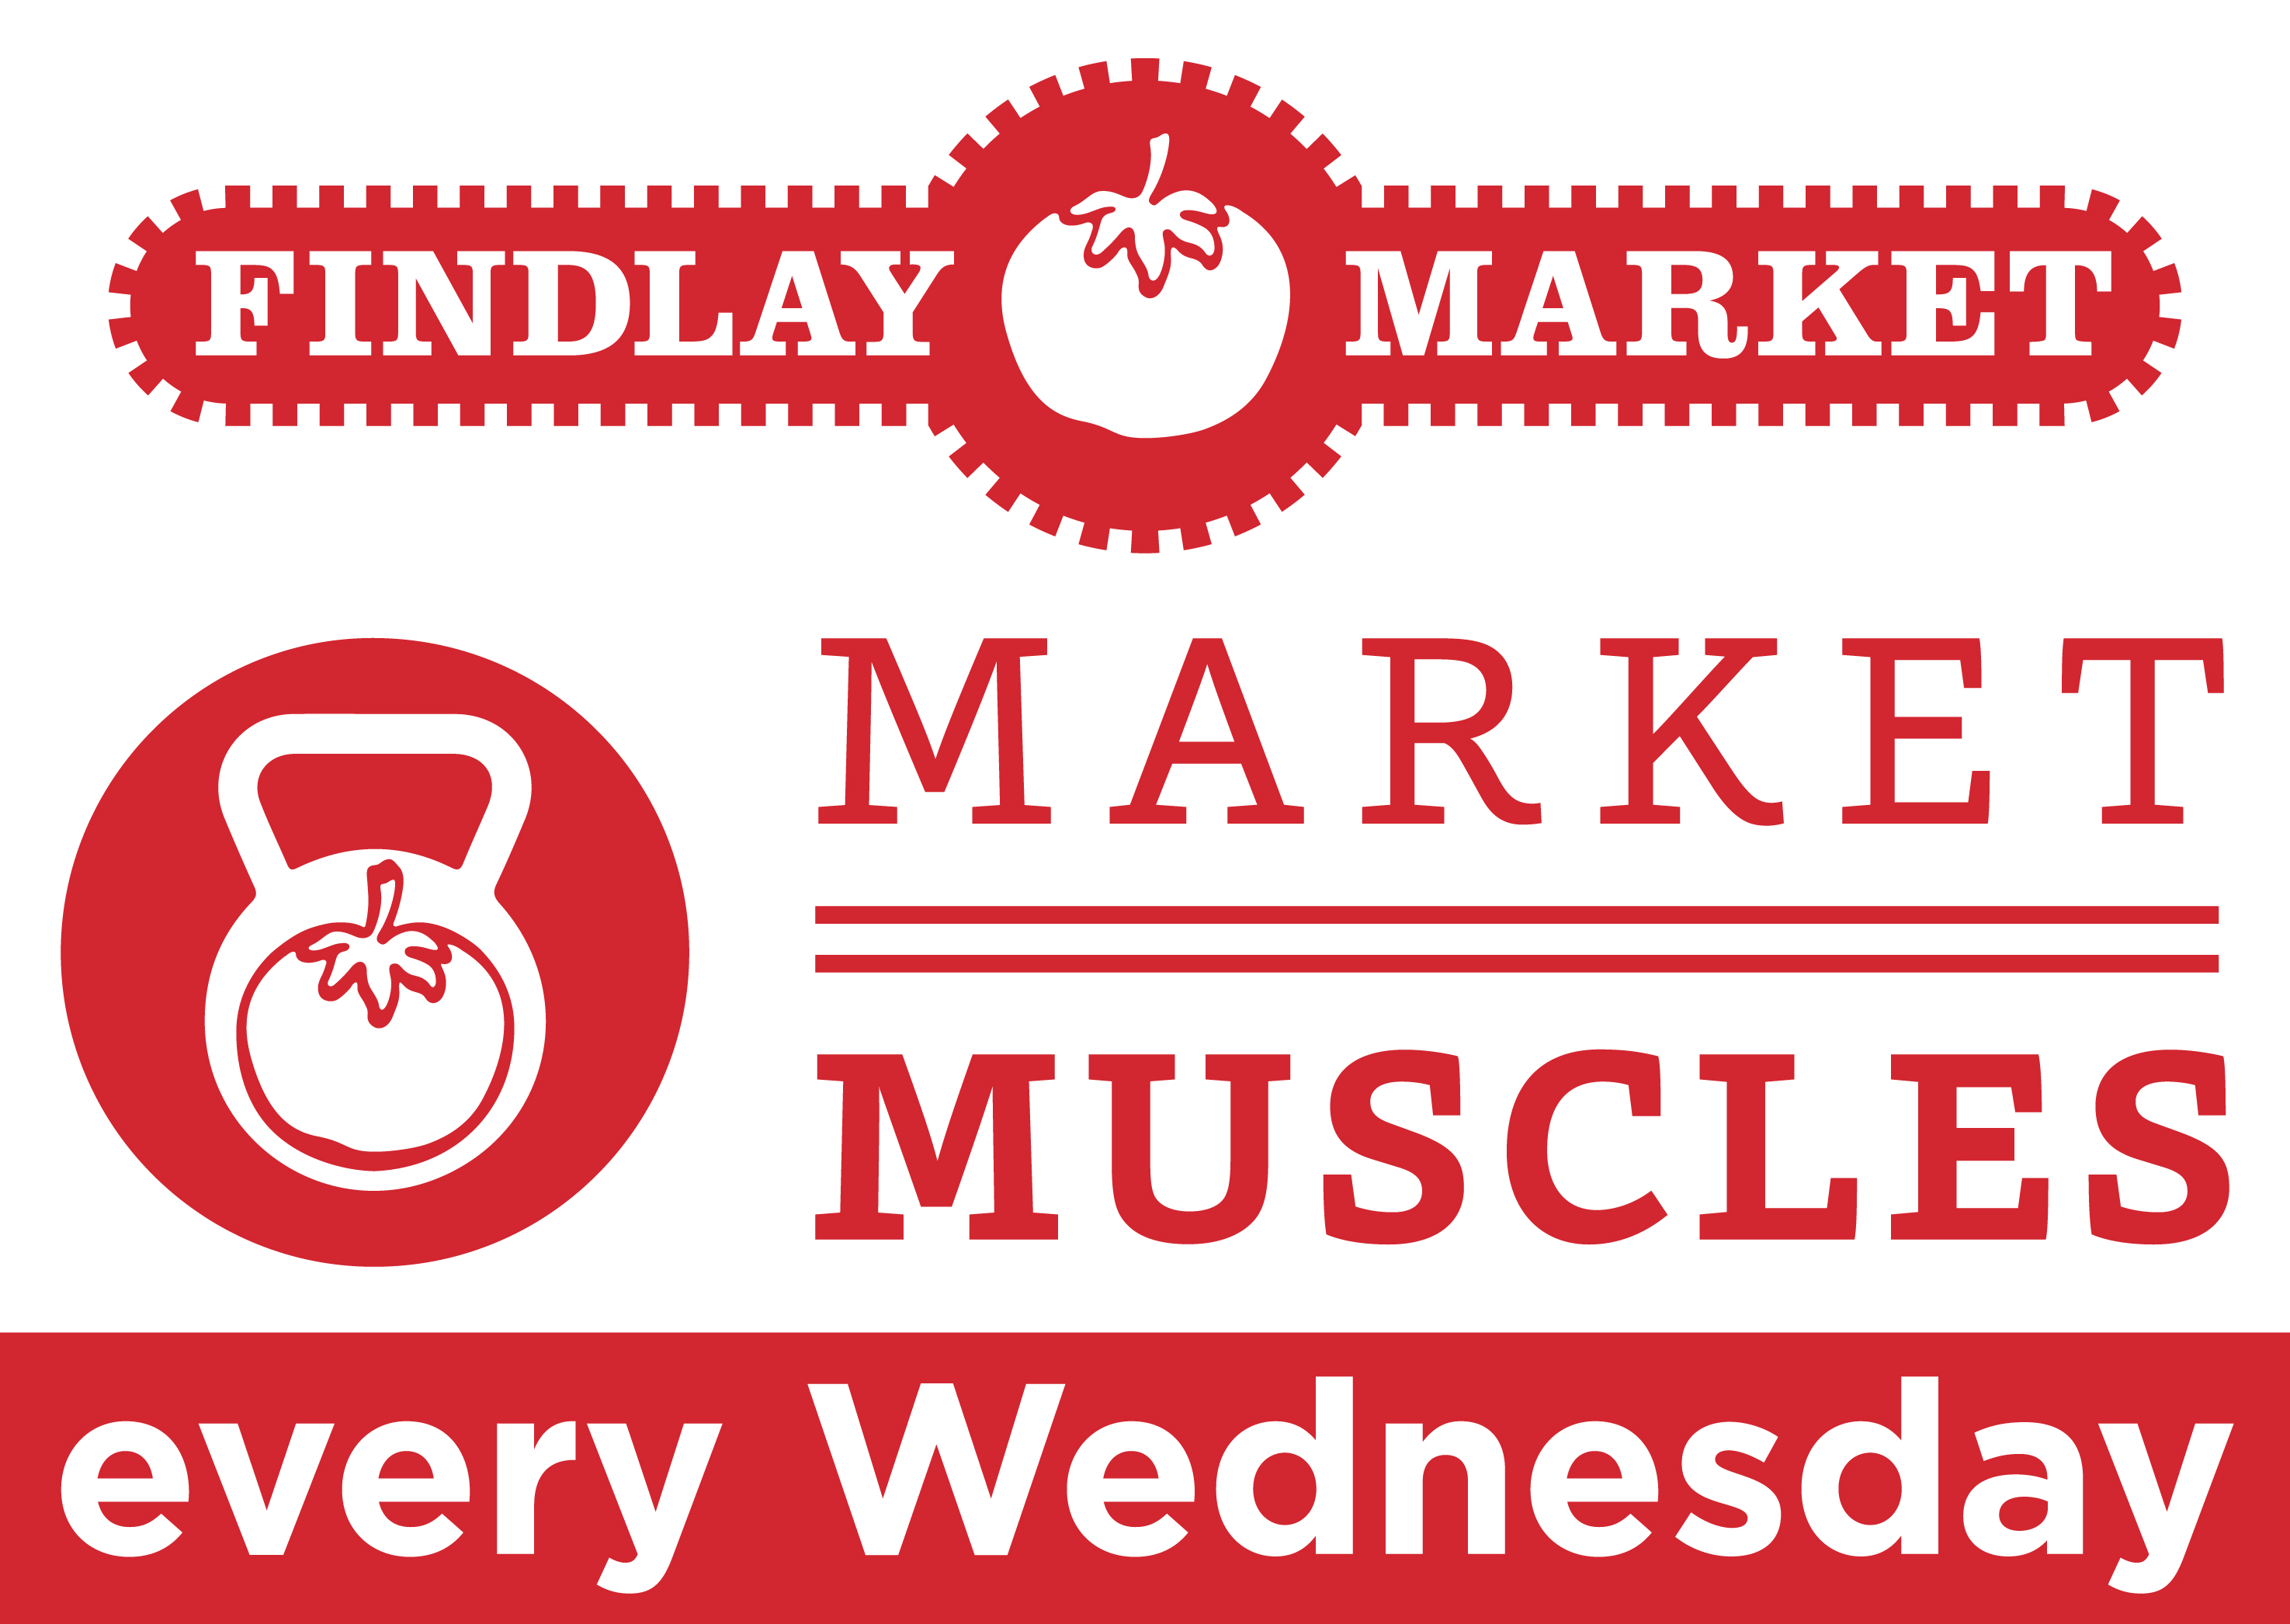 Market muscles webslider 01